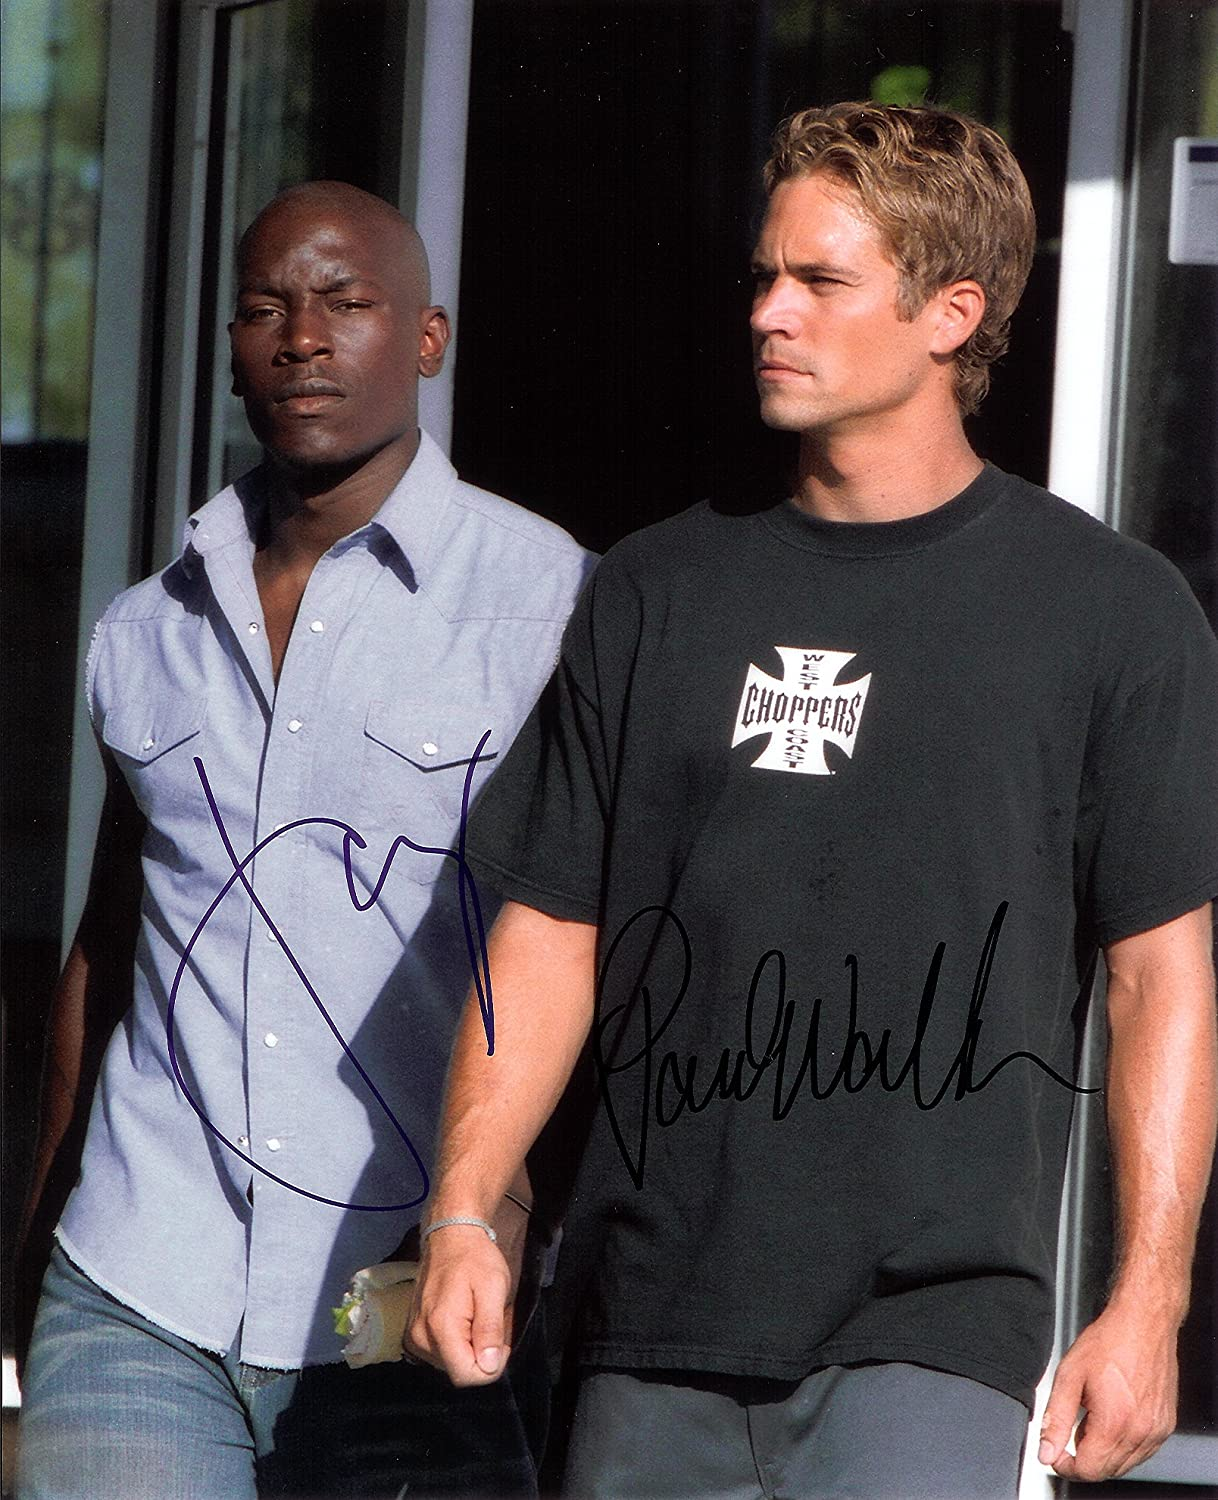 Fast & Furious with Paul Walker Signed Autographed 8 X 10 RP Photo - Mint Condition ваза pavone парочка кошек цвет черный высота 25 см jp 670 11